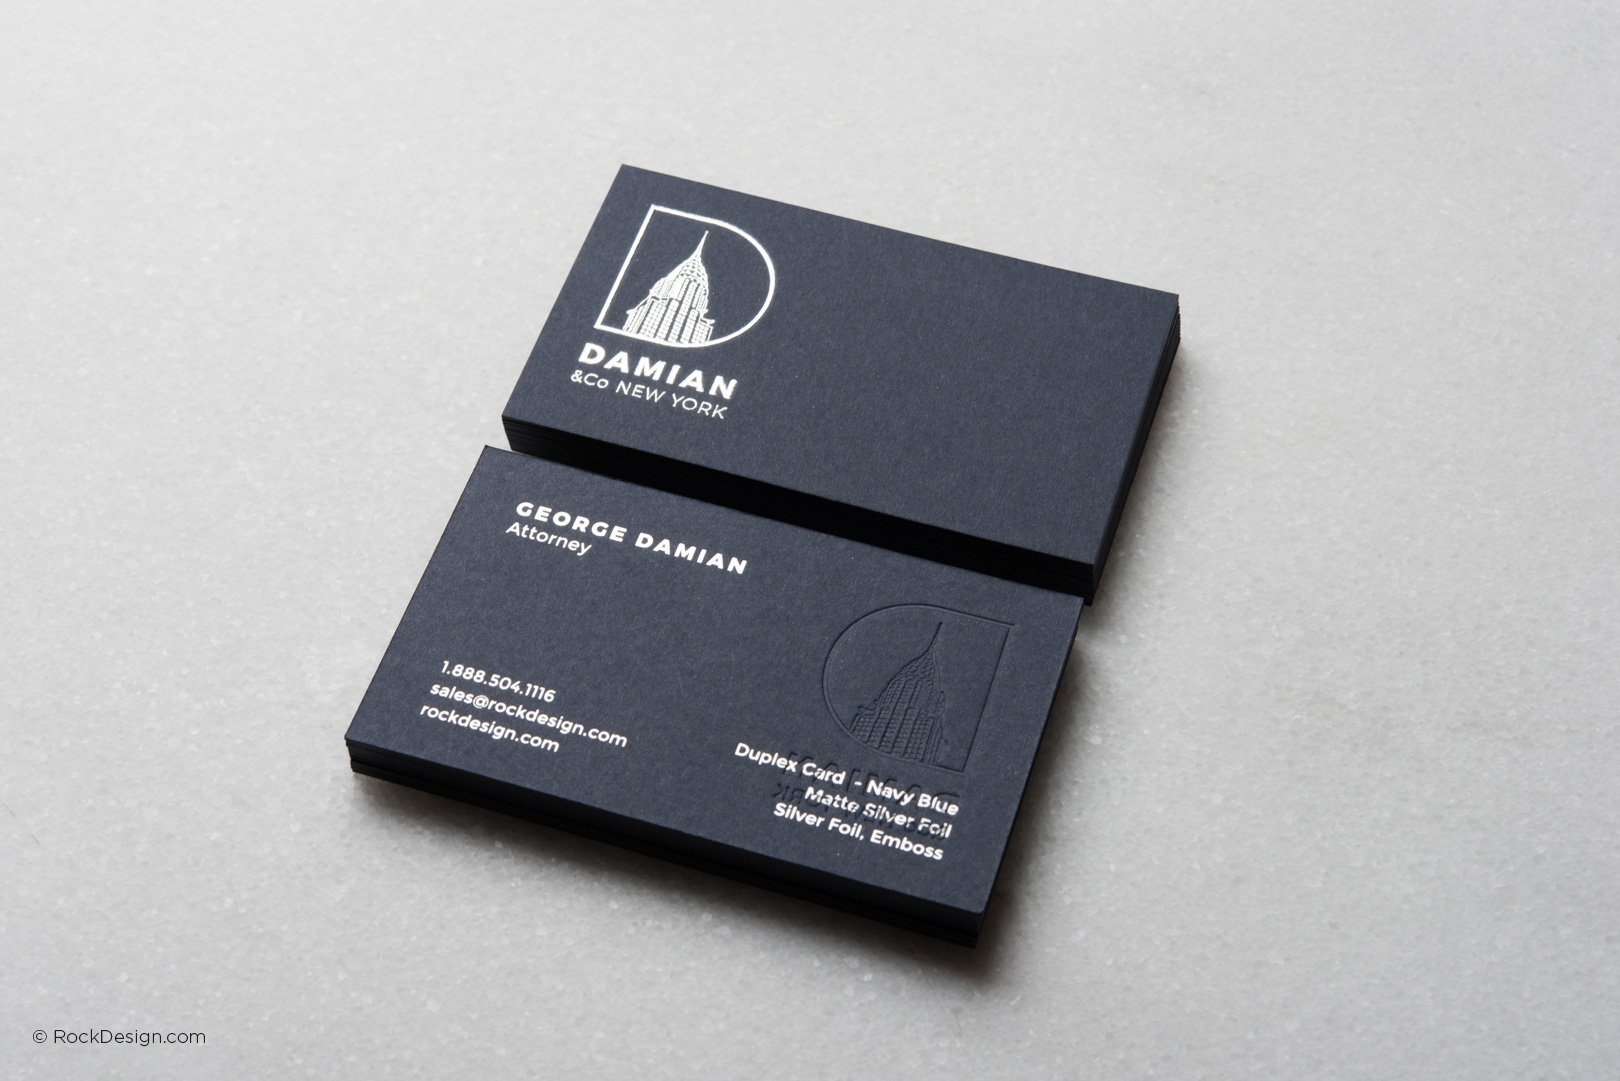 Print Online Embossed Logo Card Templates  Rockdesign Within Buisness Card Template